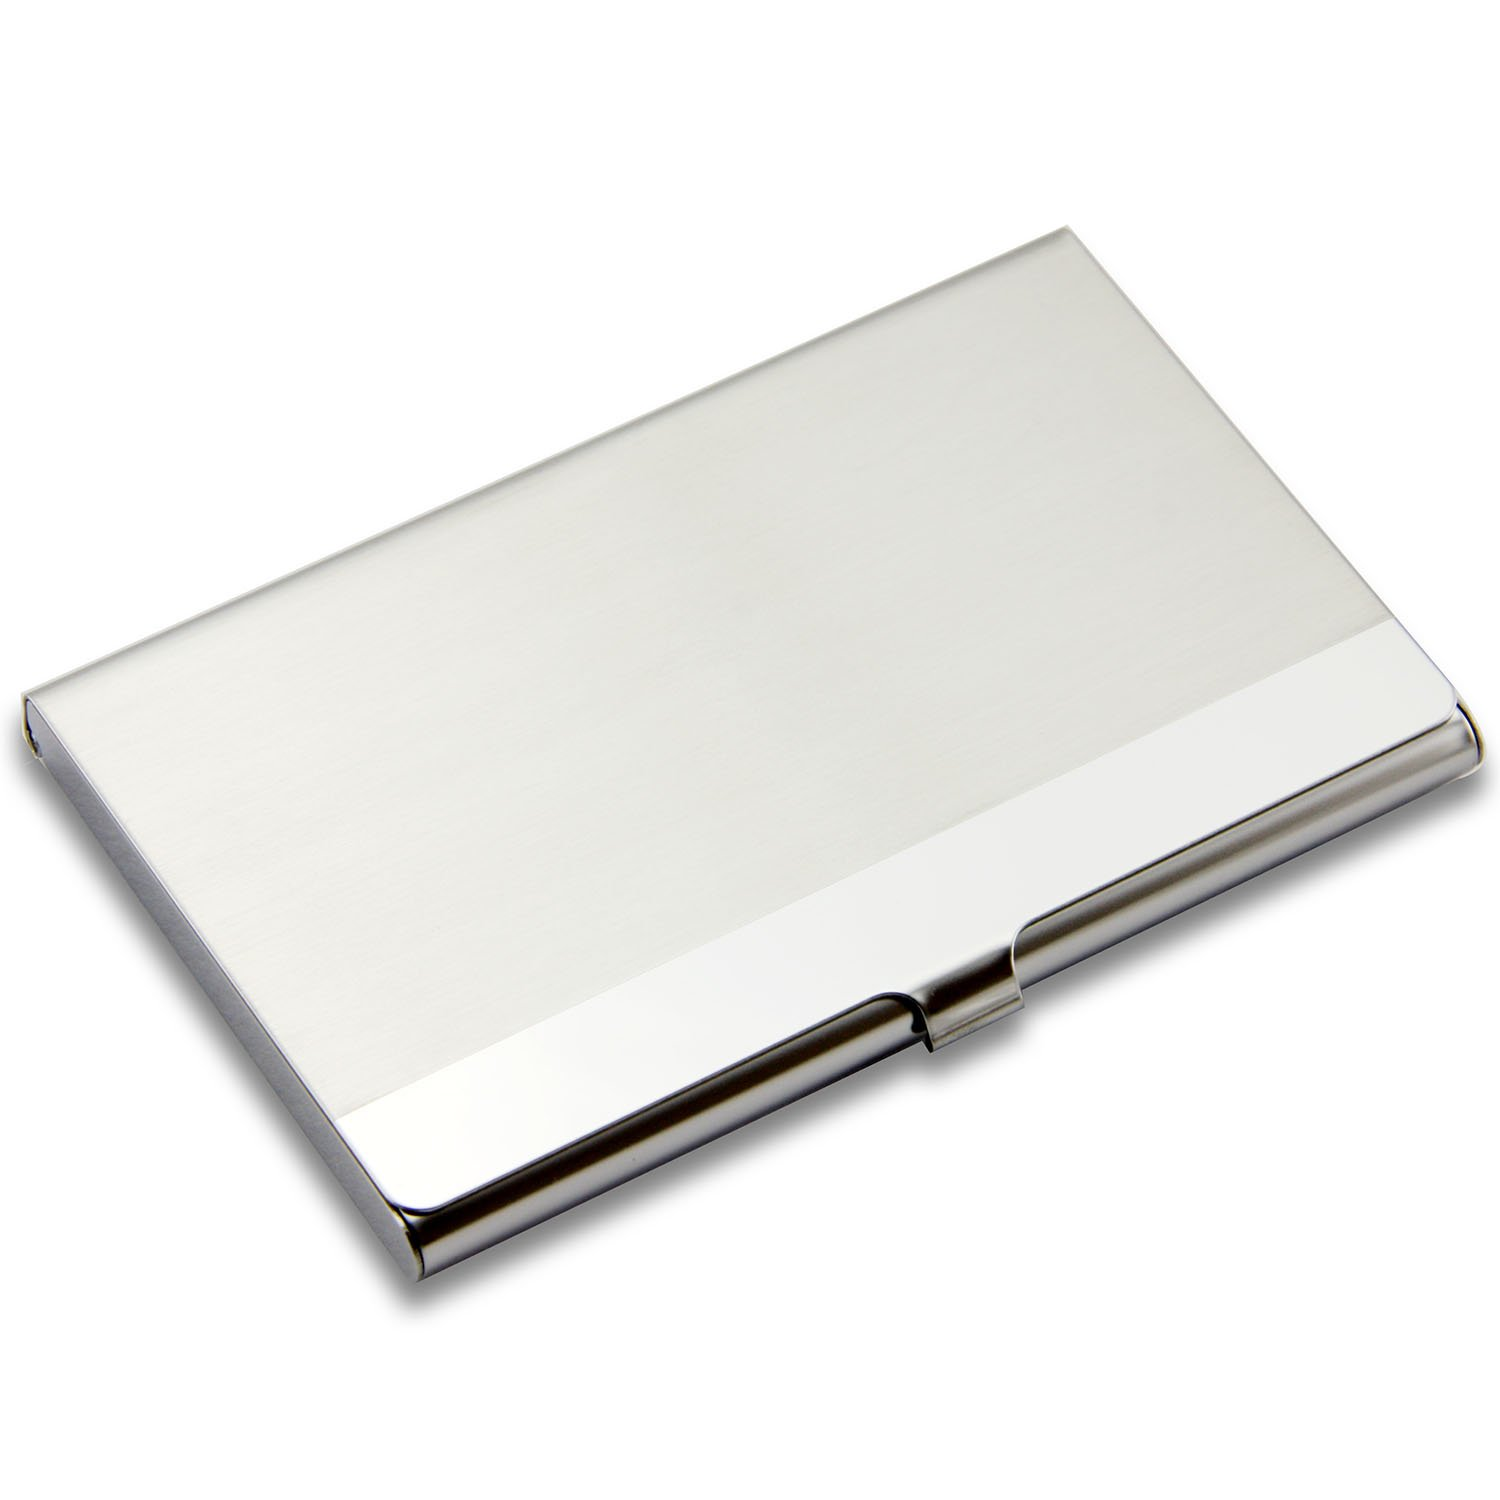 Amazon.com : Partstock(TM) Business Card Holder - Stainless Steel ...